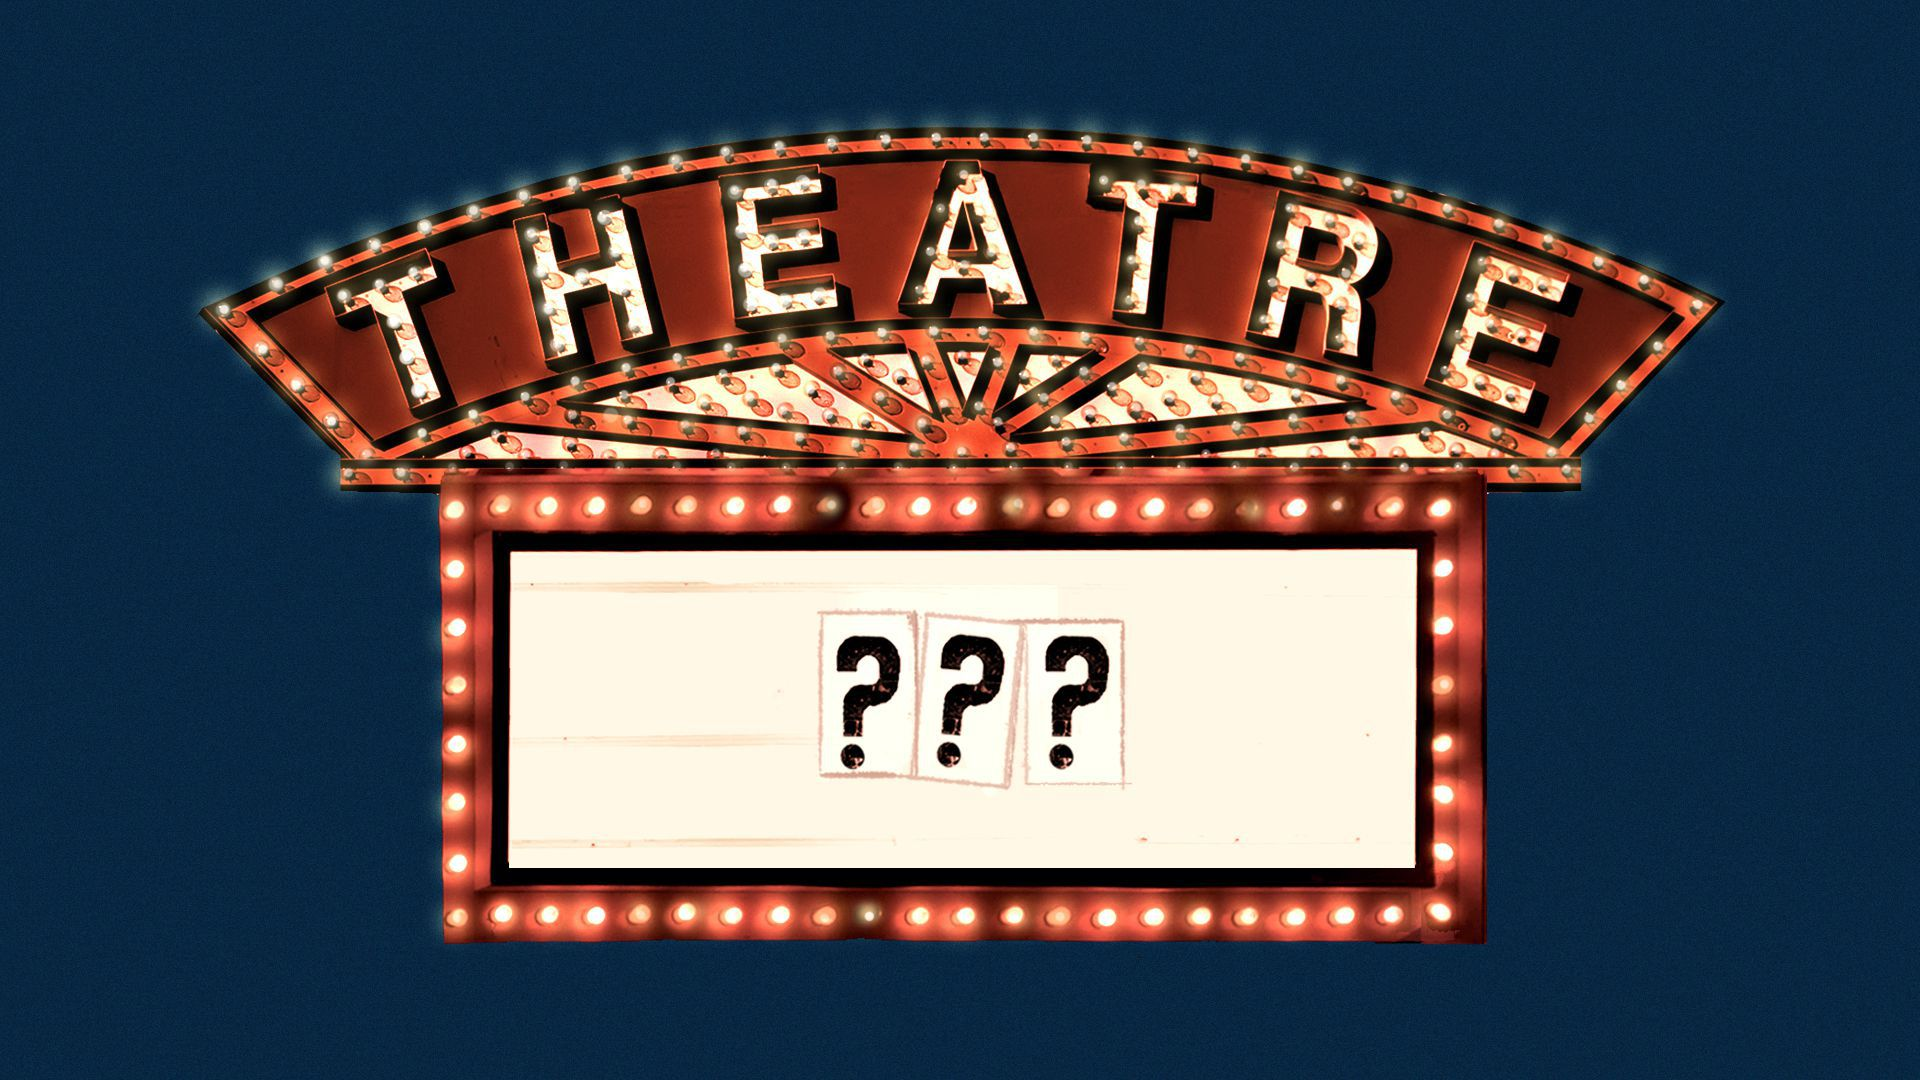 Illustration of a movie theater marquee with question markson it